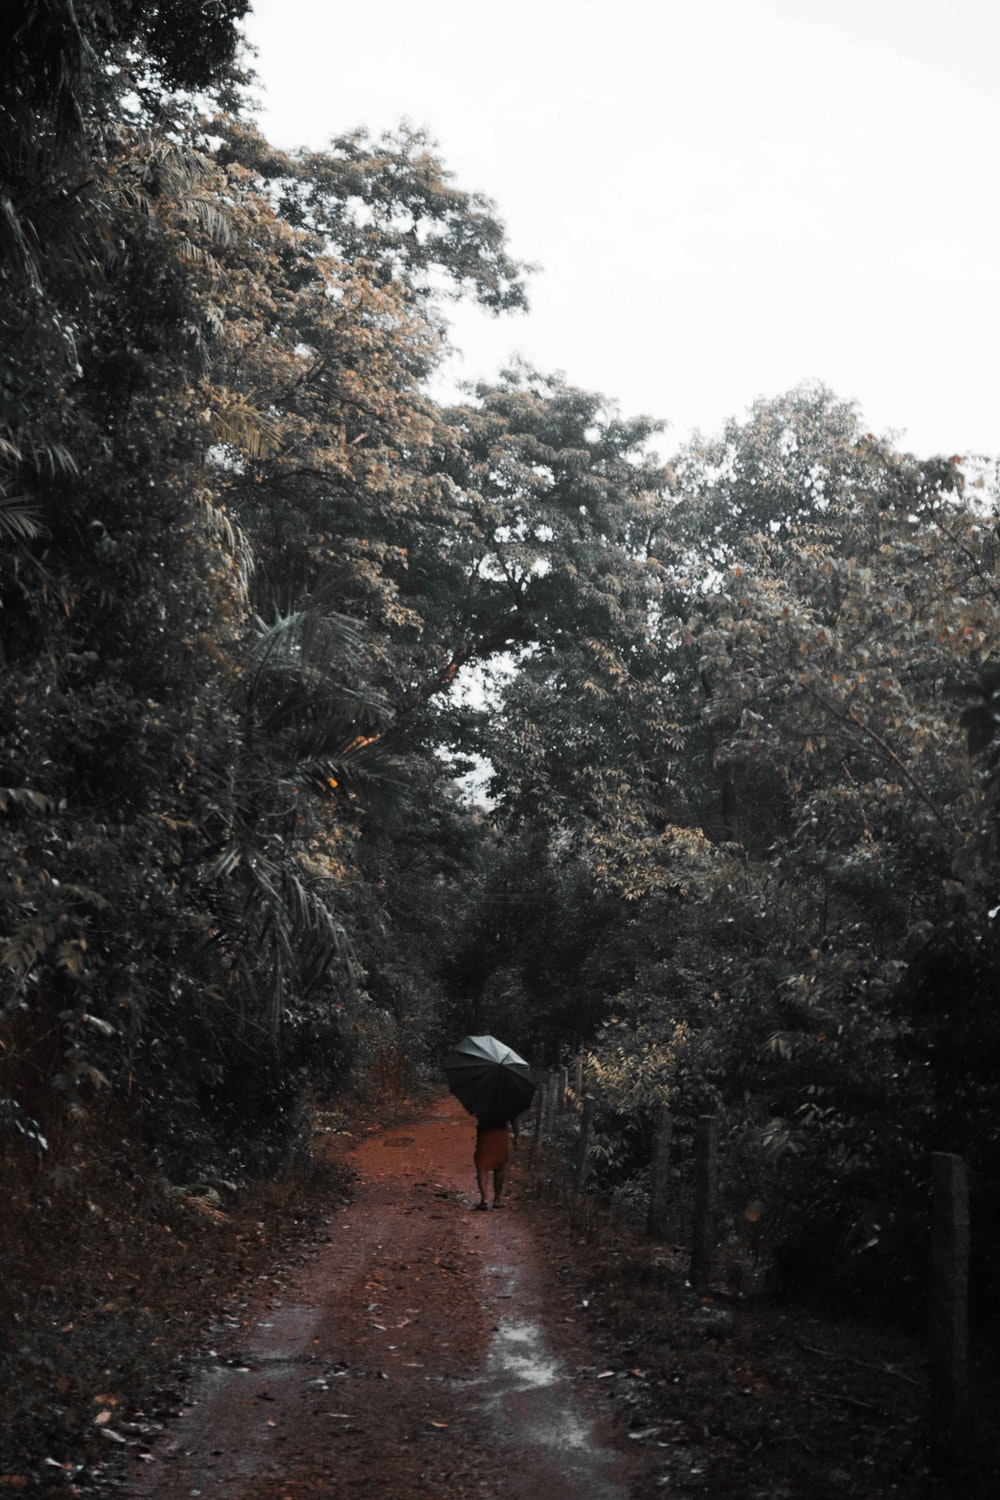 person in black jacket and red backpack walking on pathway between green trees during daytime